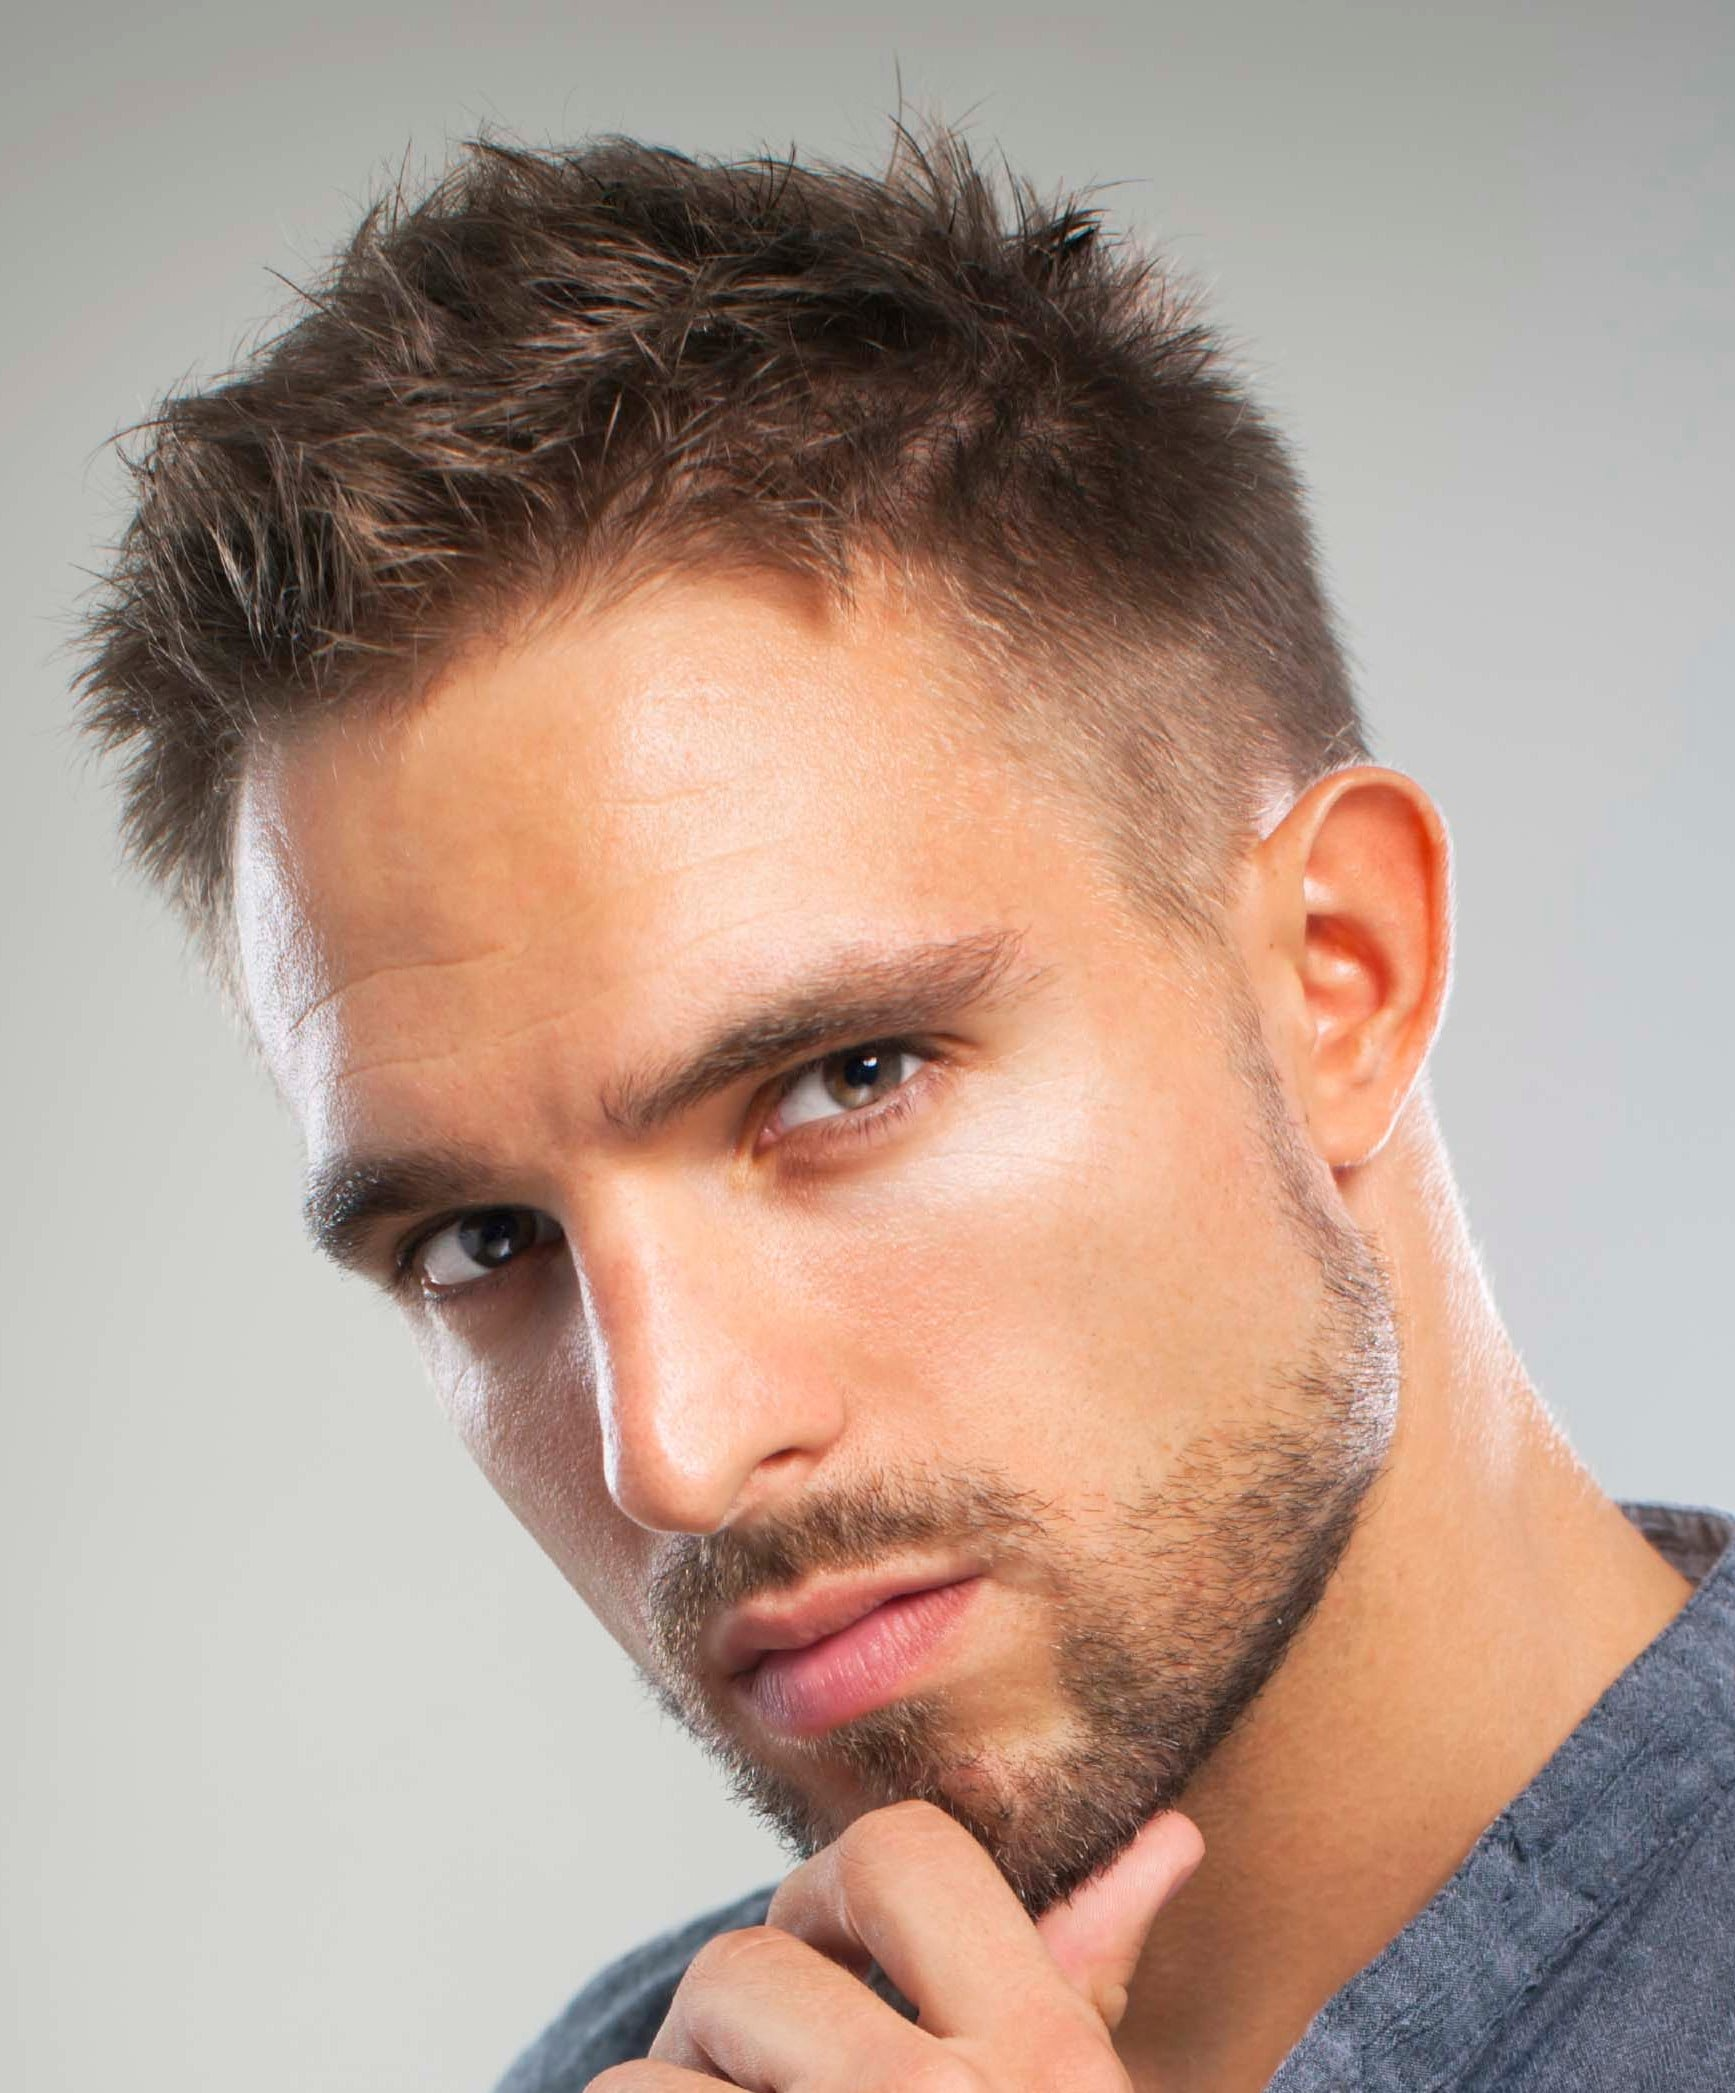 5 Of The Best Hairstyles For Men With Thin Hair